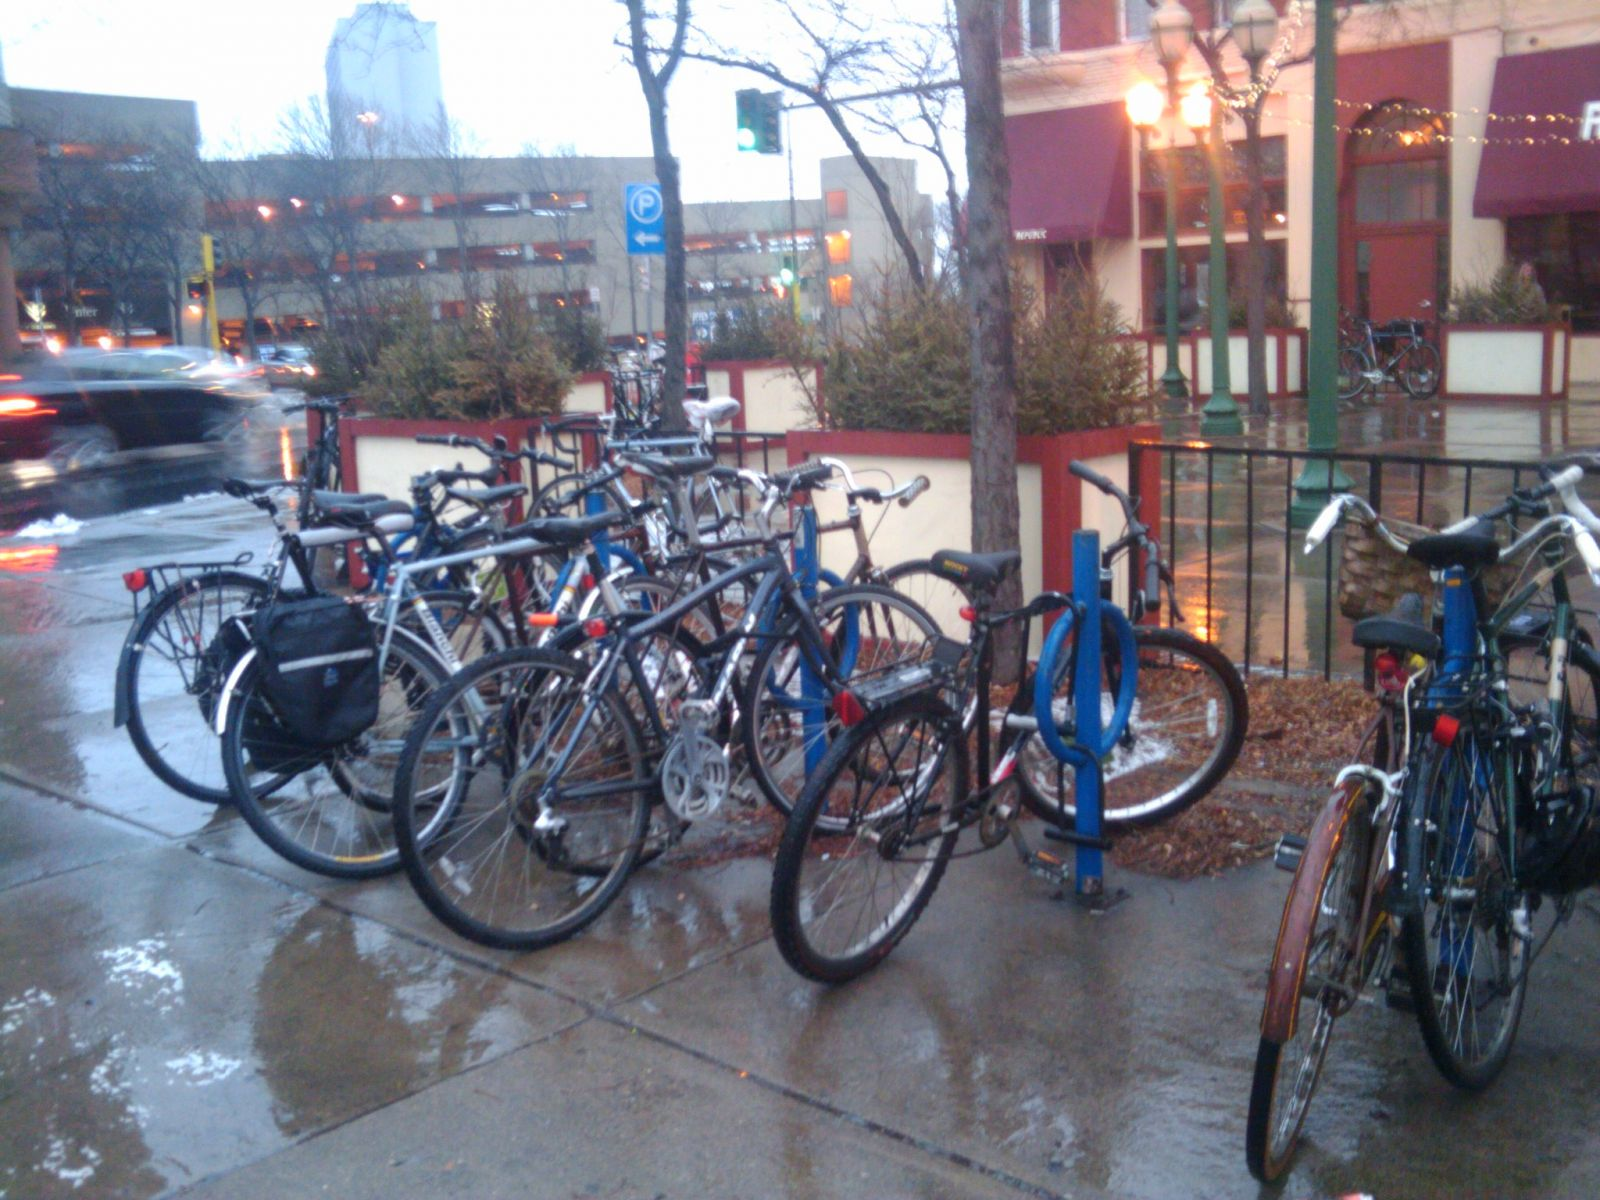 The bike racks outside The Republic last night